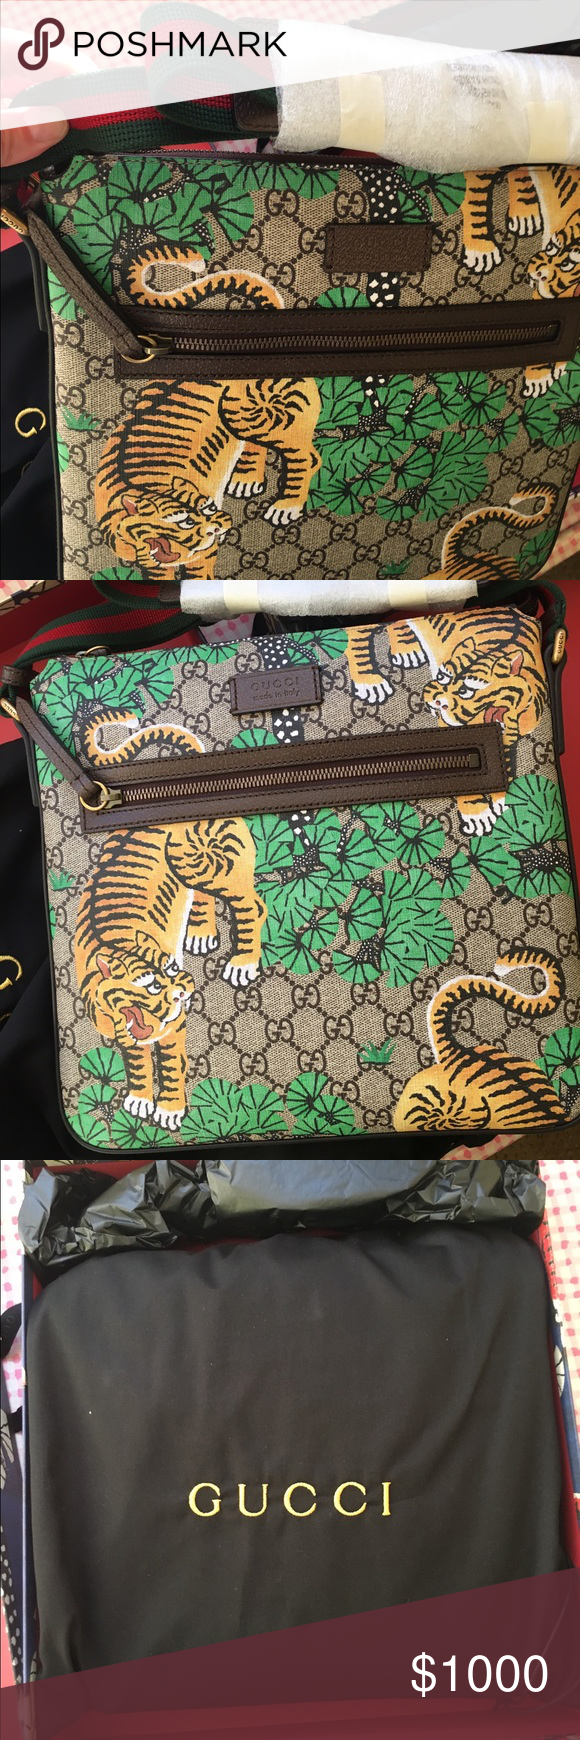 0b53fdb6153f59 Gucci Bengal GG Supreme Messenger Bag Brand new. Never used. Men's Gucci  Messenger Bag. Comes with the dust bag and original limited edition box.